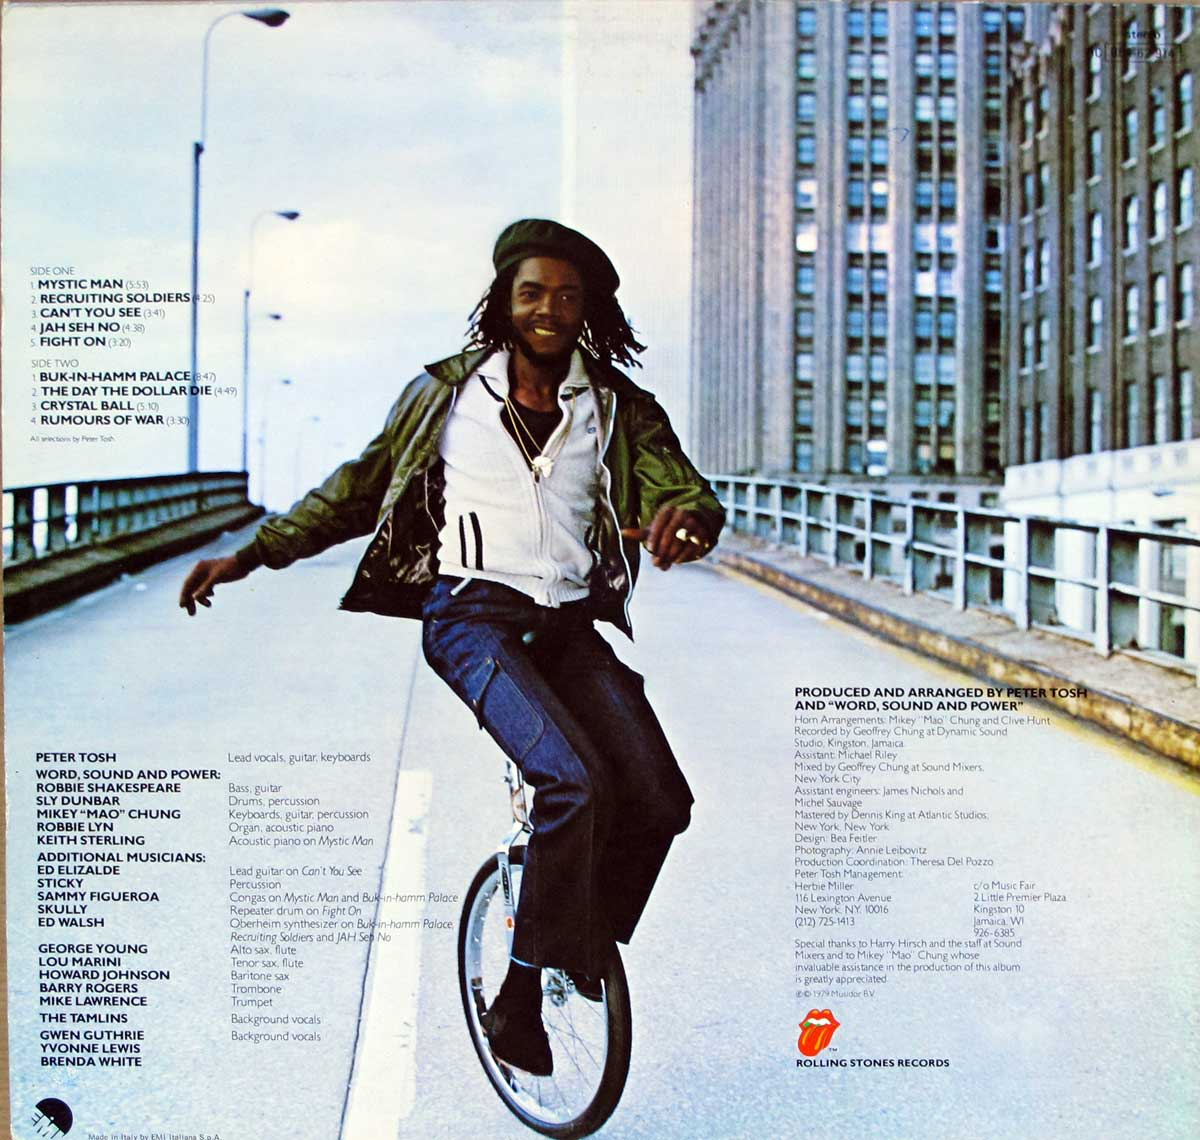 Photo Of Peter Tosh Riding A Unicycle On The Back Cover Peter Tosh - Mystic Man ( Italy )